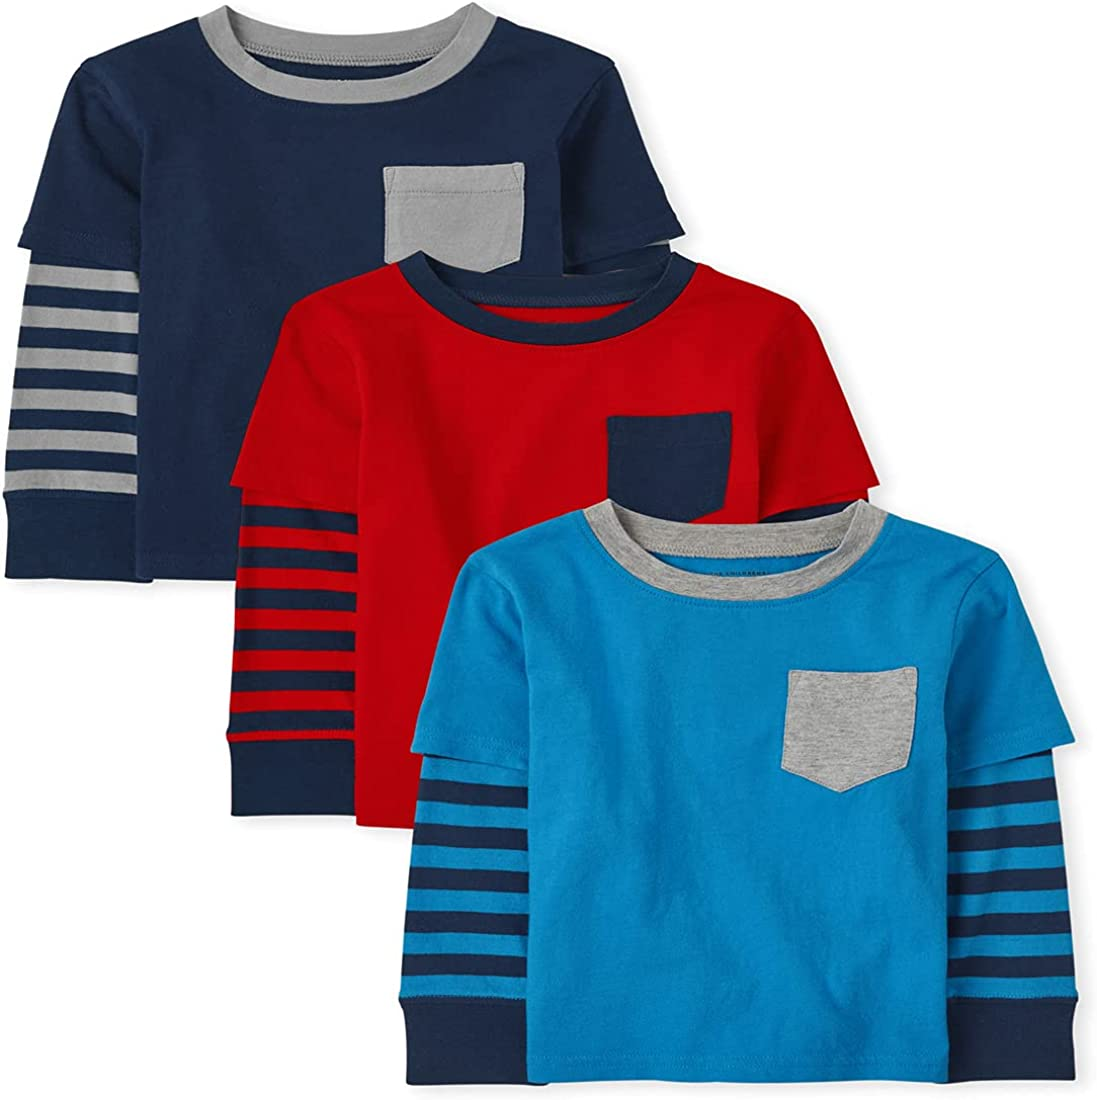 The Children's Place and Toddler Boy Long Striped Sleeve 2 In 1 Top 3-Pack